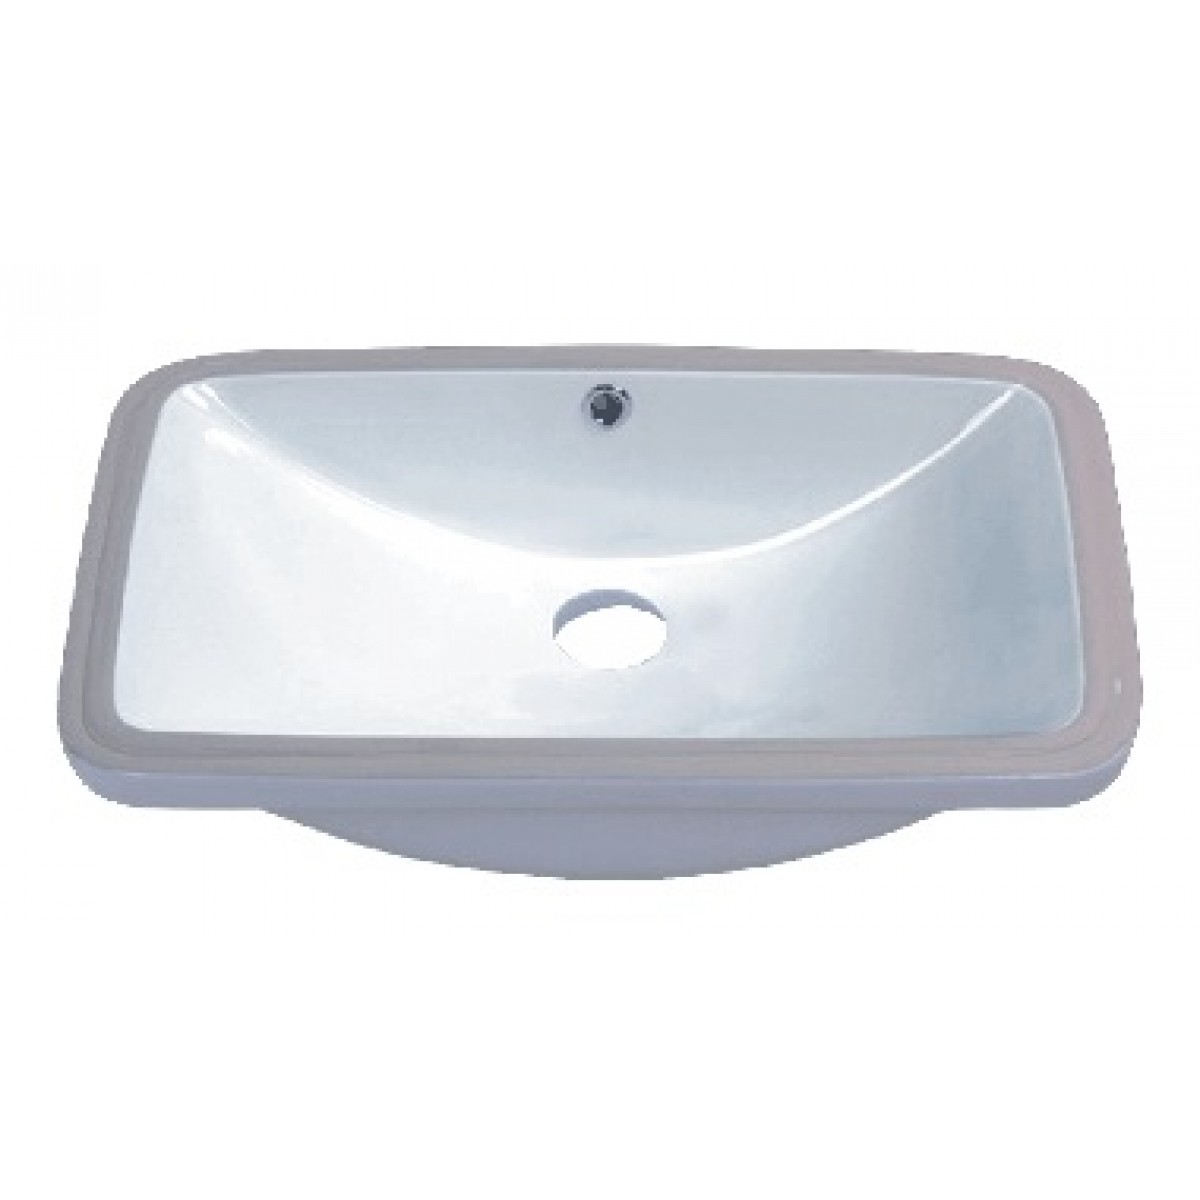 24 Inch Porcelain Ceramic Vanity Undermount Bathroom Vessel Sink